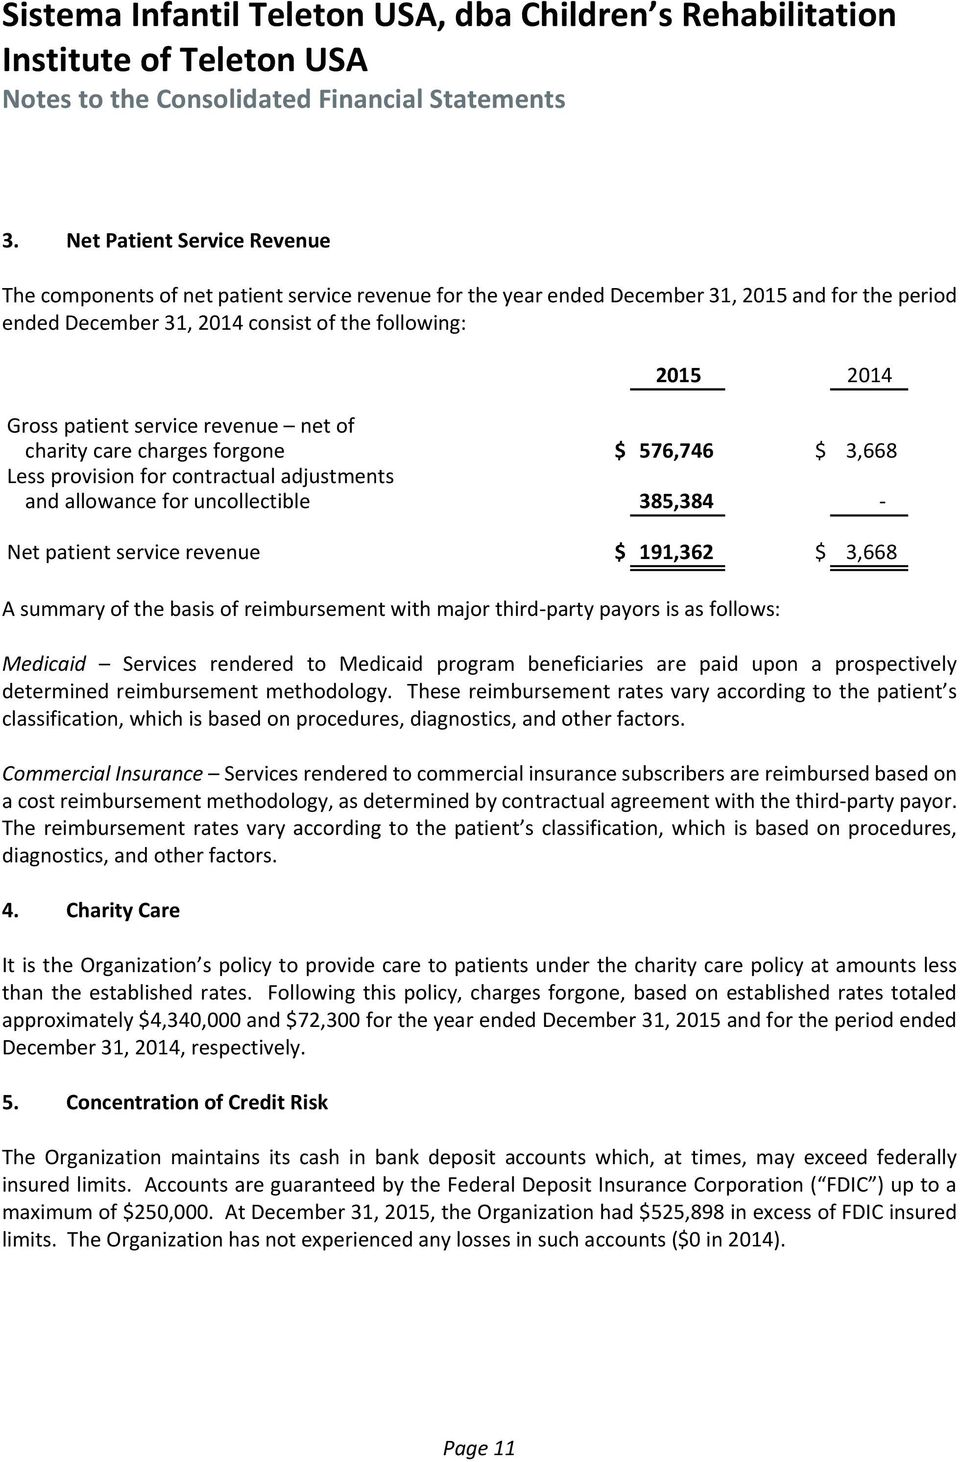 patient service revenue net of charity care charges forgone $ 576,746 $ 3,668 Less provision for contractual adjustments and allowance for uncollectible 385,384 Net patient service revenue $ 191,362